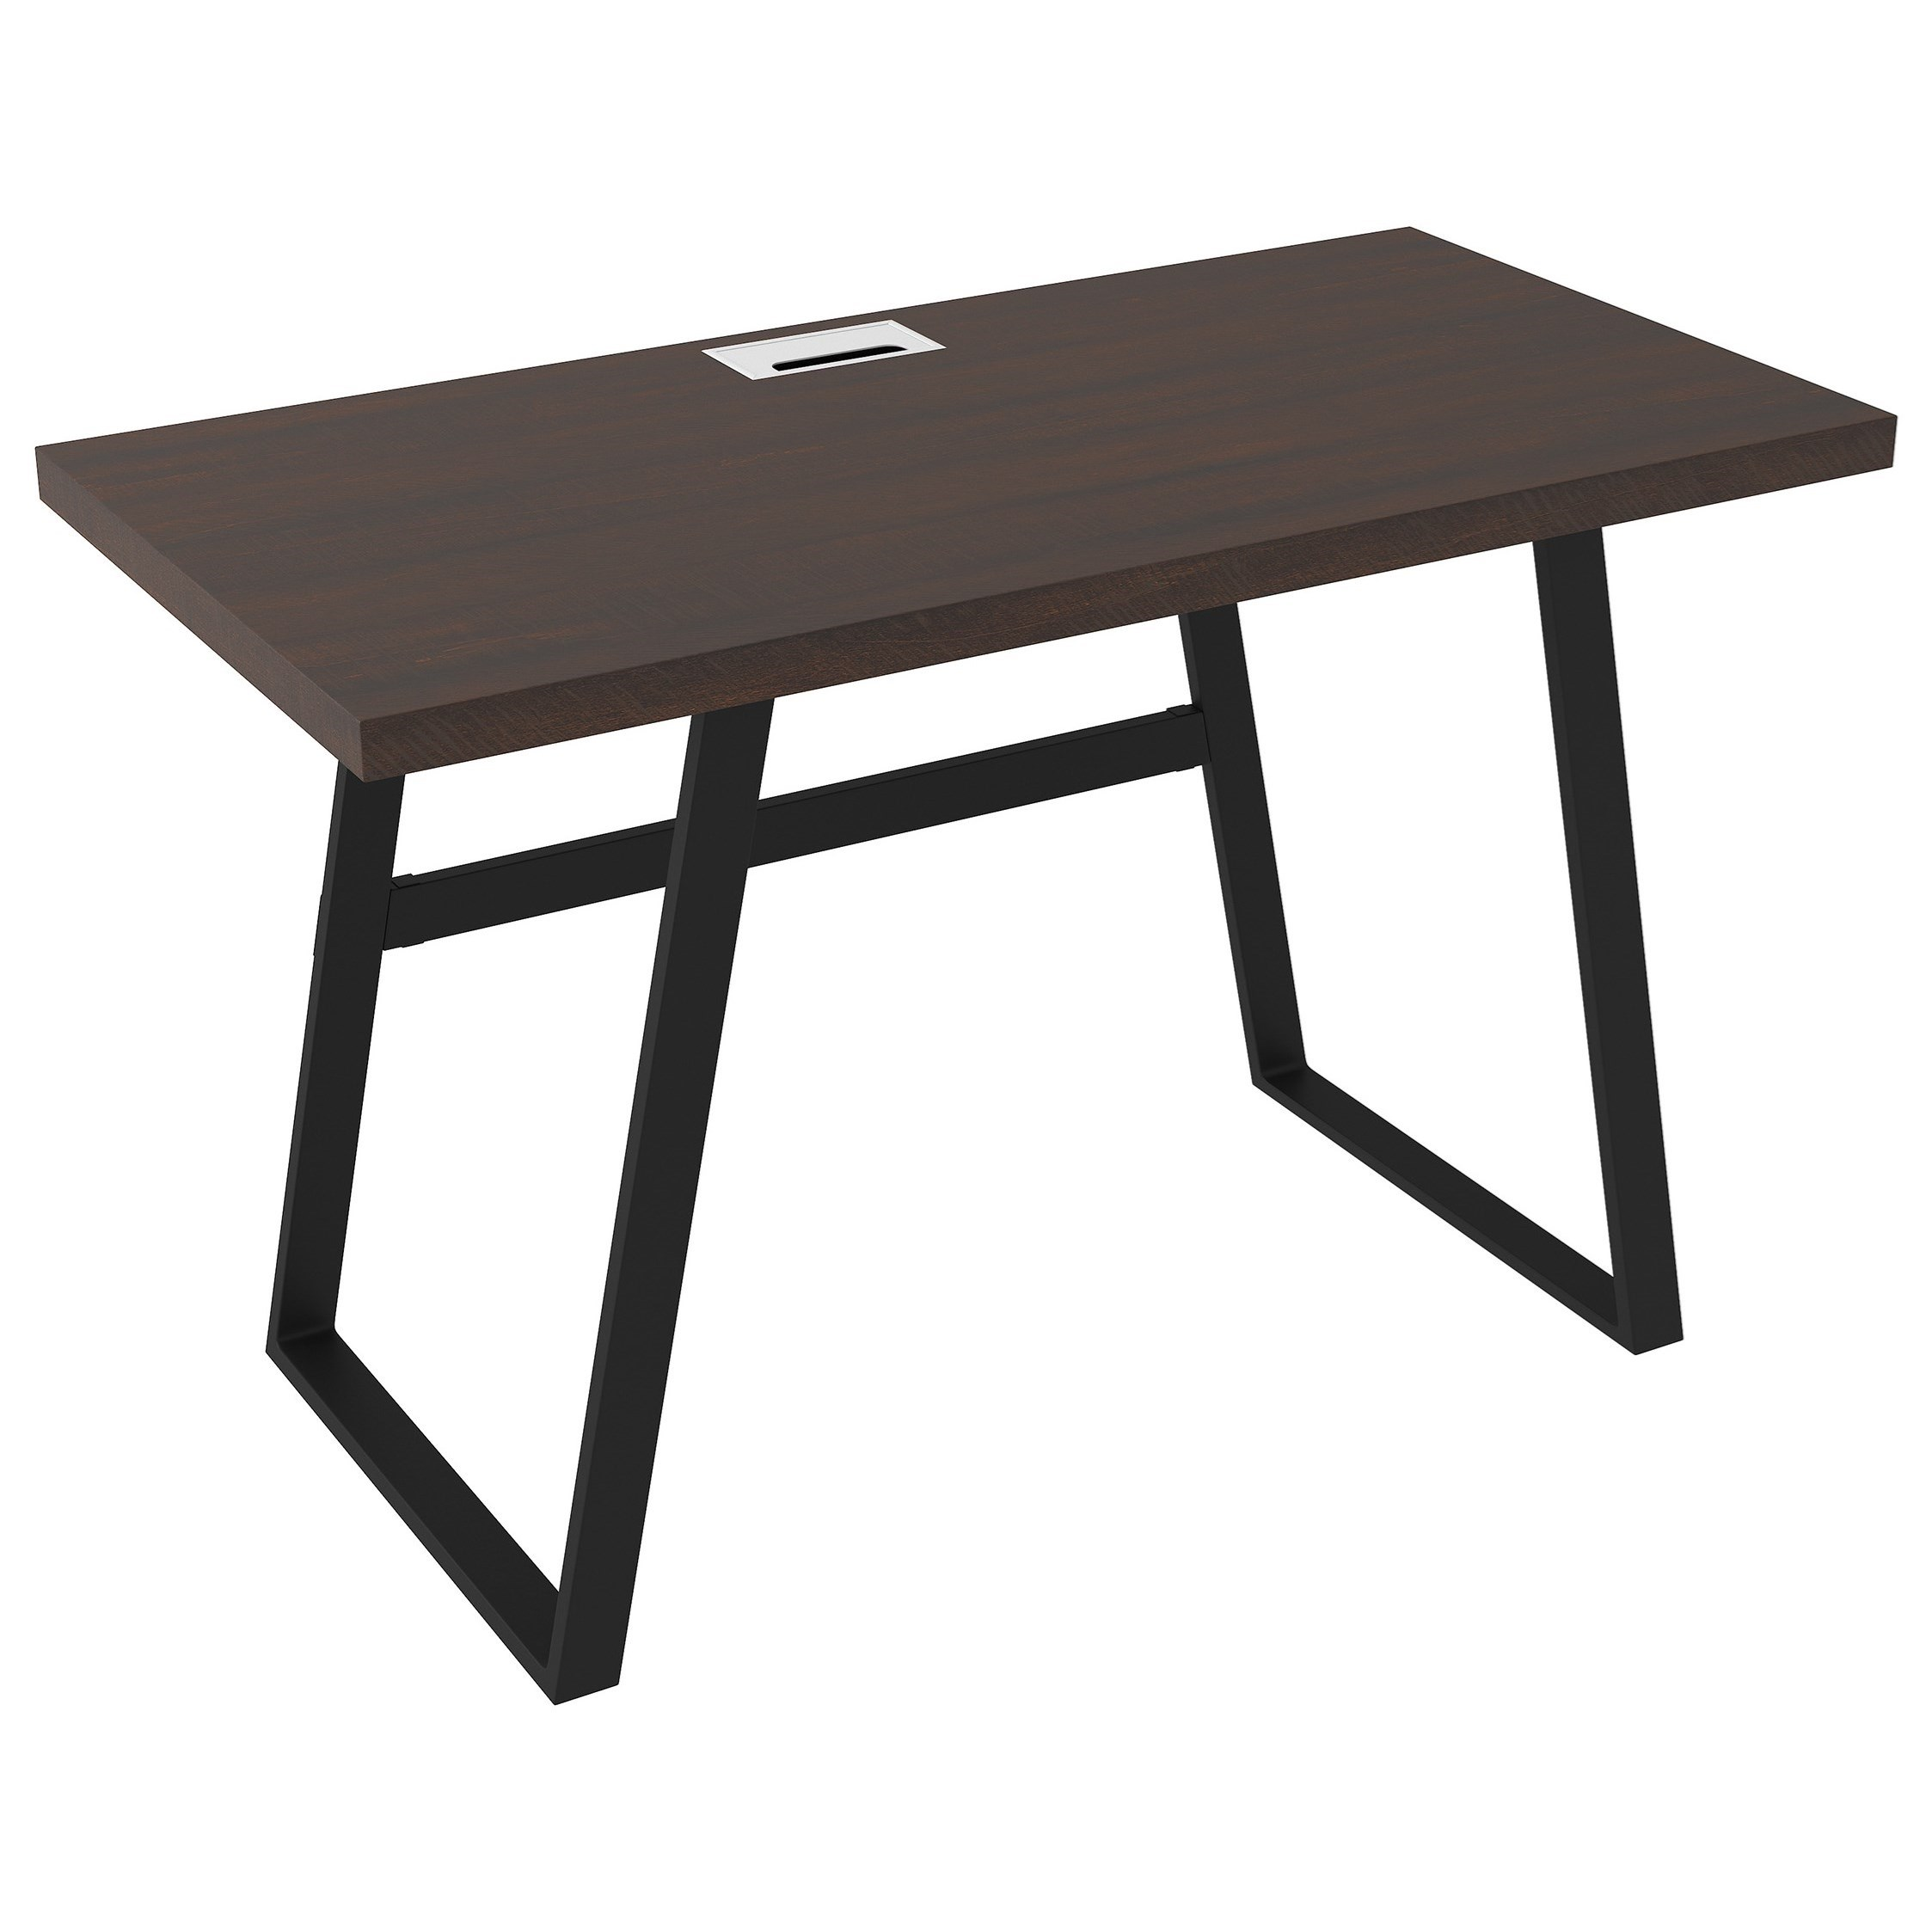 Camiburg Home Office Small Desk by Signature Design by Ashley at Crowley Furniture & Mattress